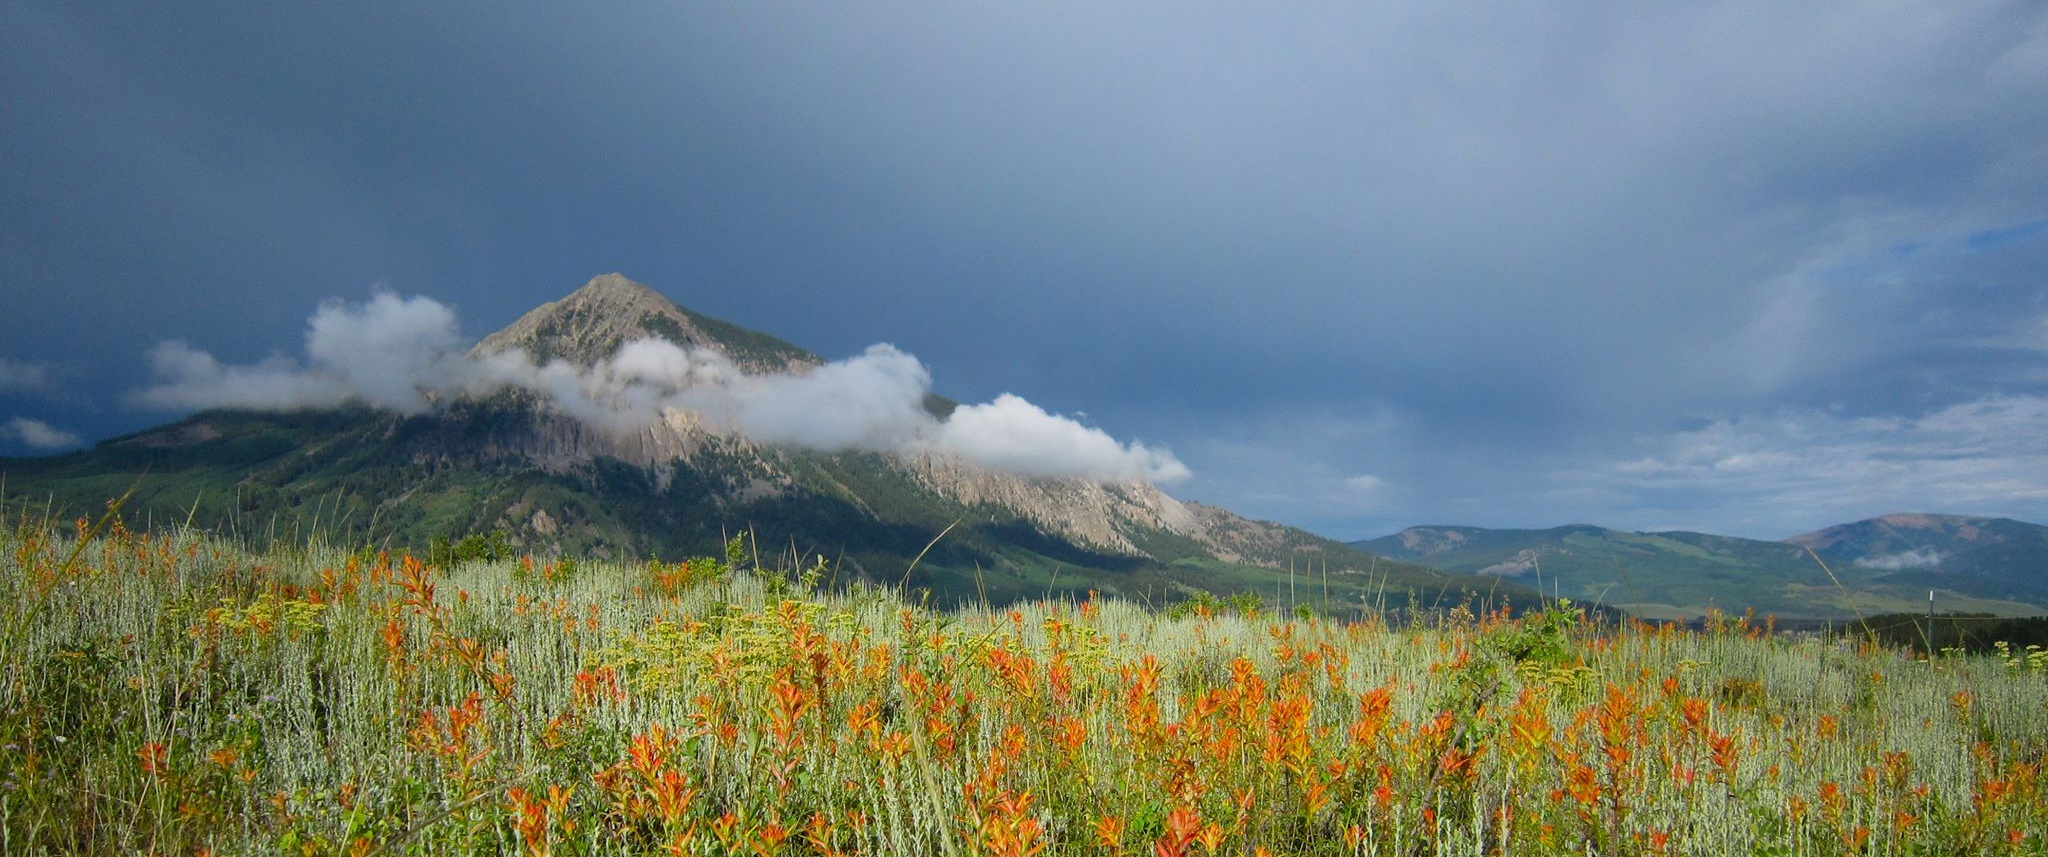 Crested Butte Mountain, which sits over the town of Crested Butte.